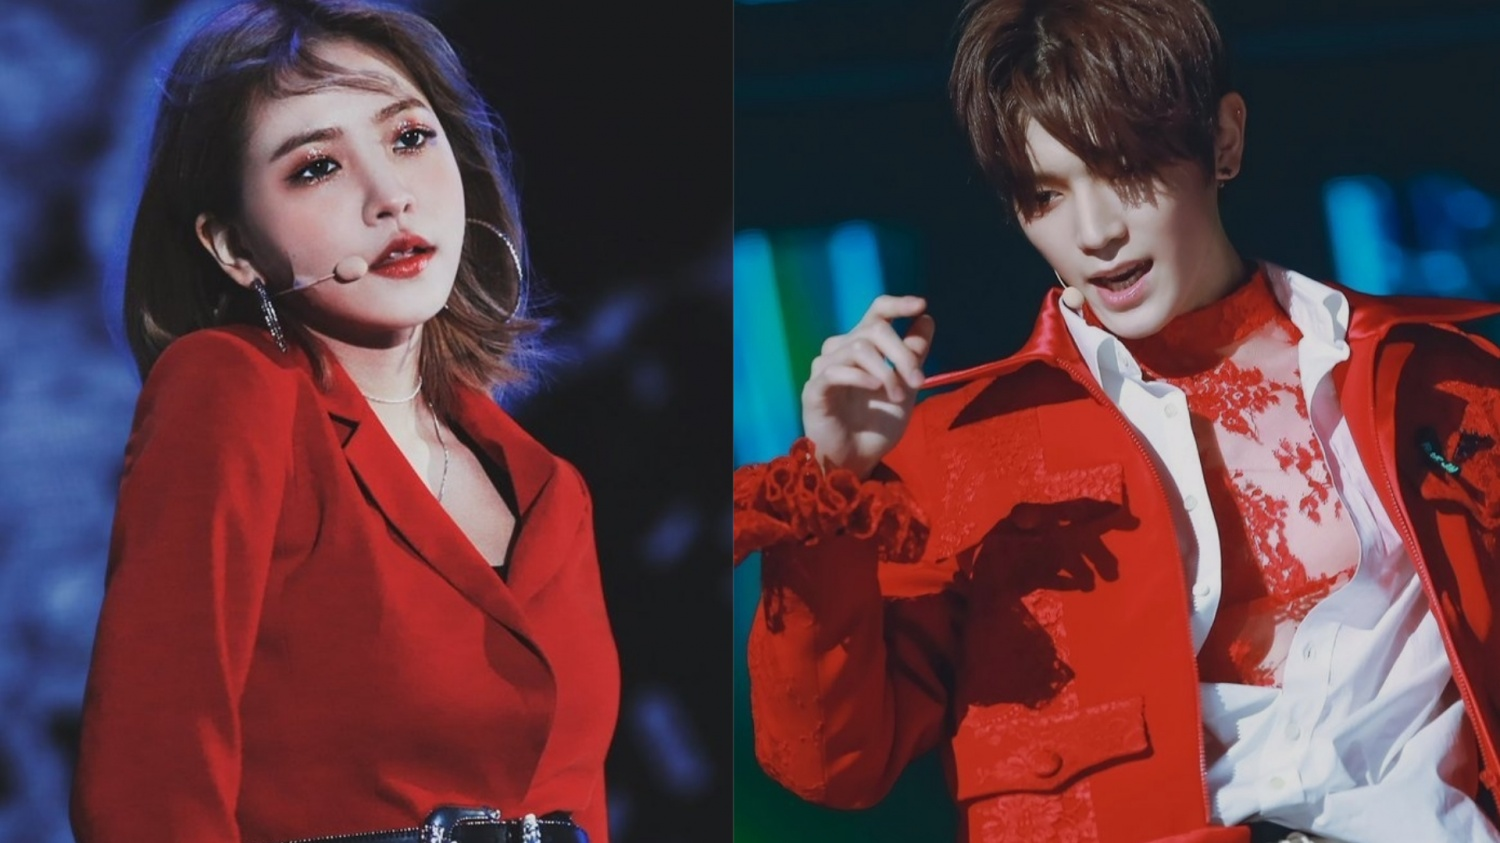 Taeyong Halloween 2020 How The Dating Rumor Between NCT's Taeyong and Red Velvet's Yeri